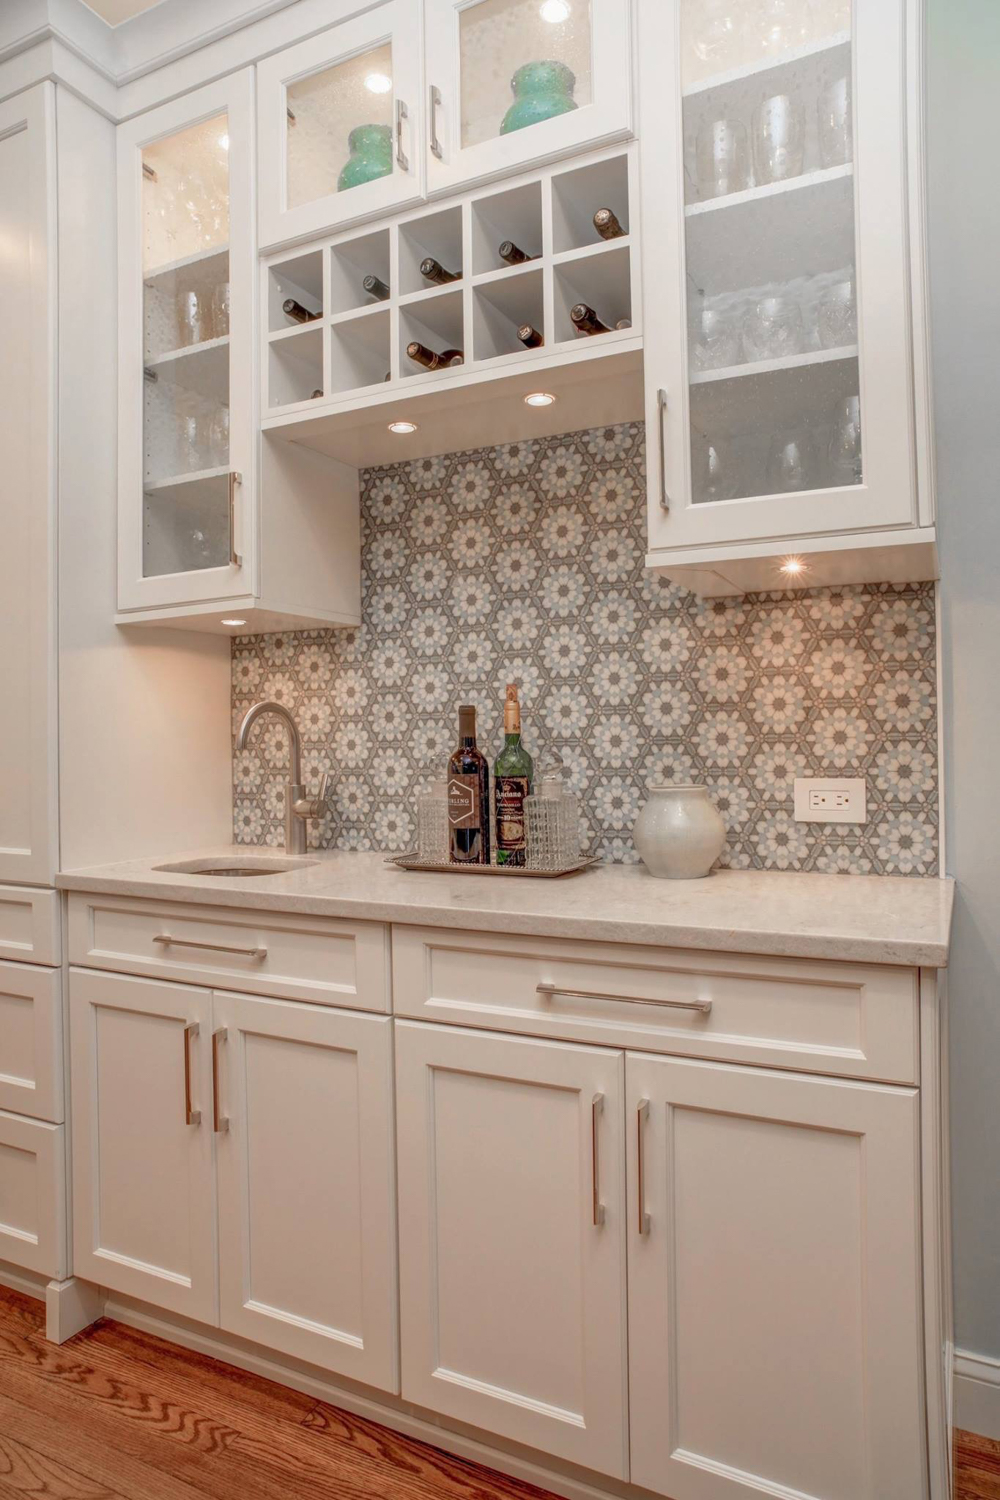 Decorative Tile Backsplash 1